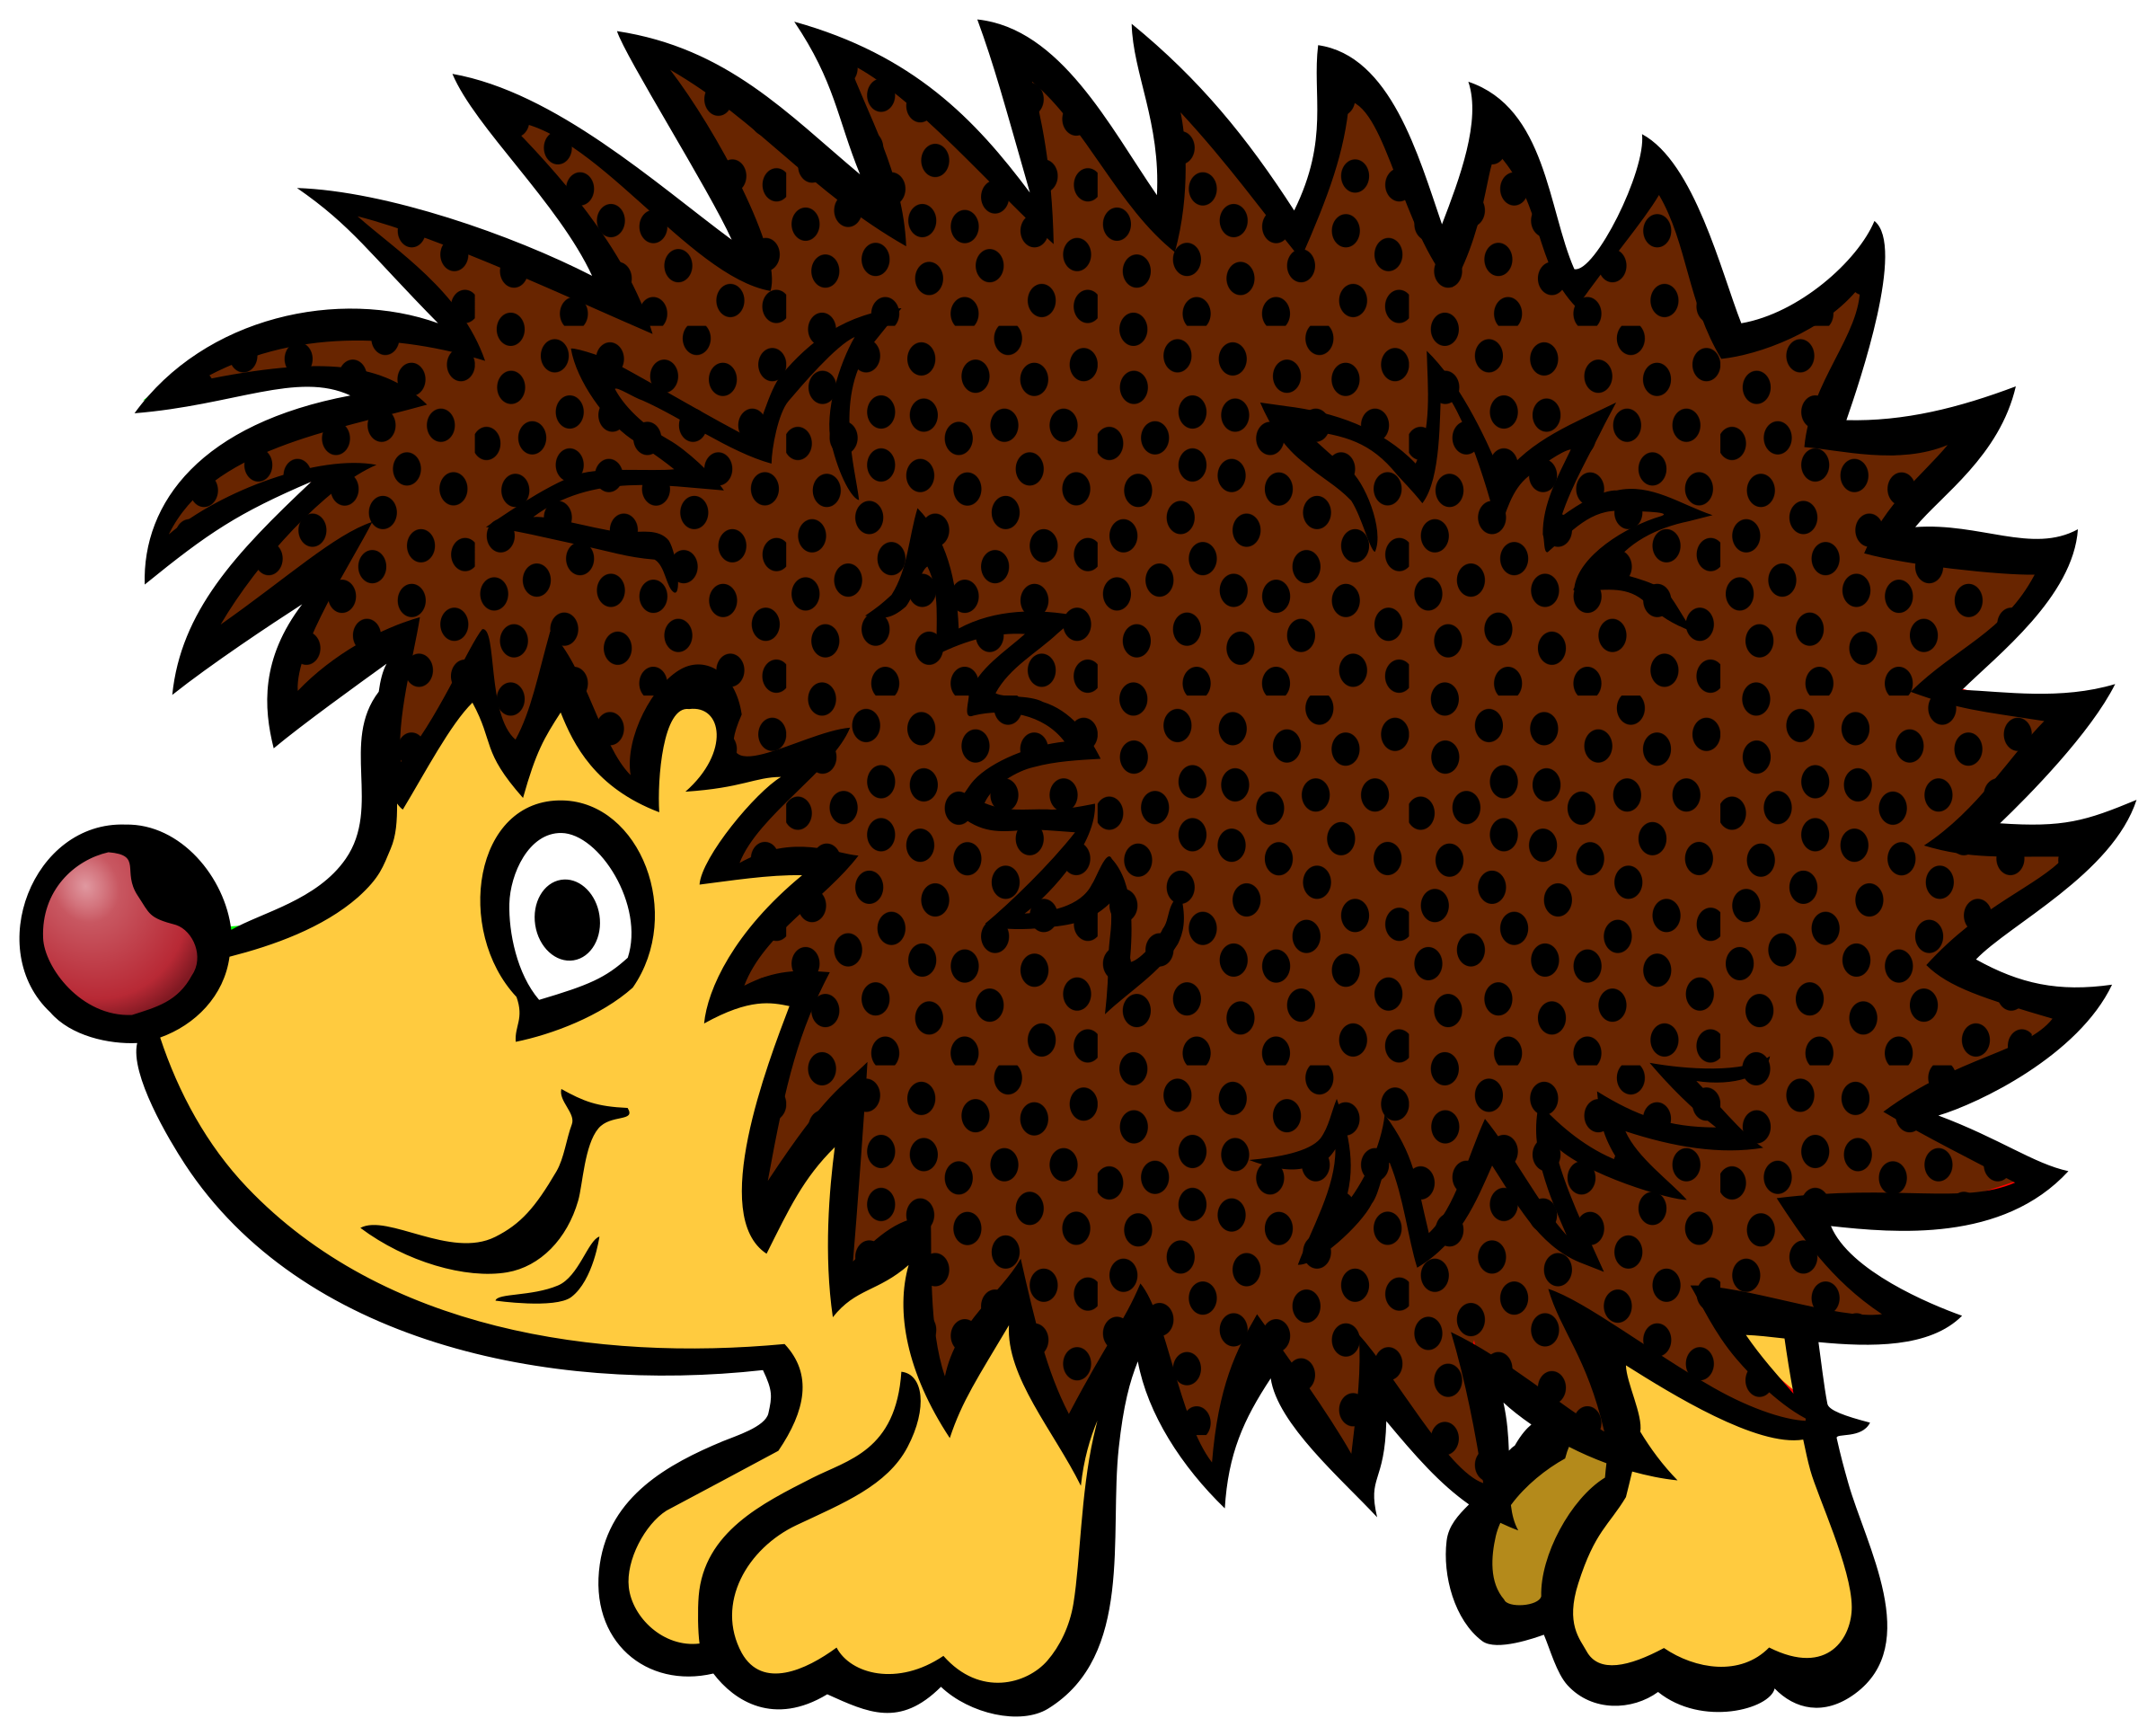 graphic freeuse download Hedgehog clipart. Clip art the cliparts